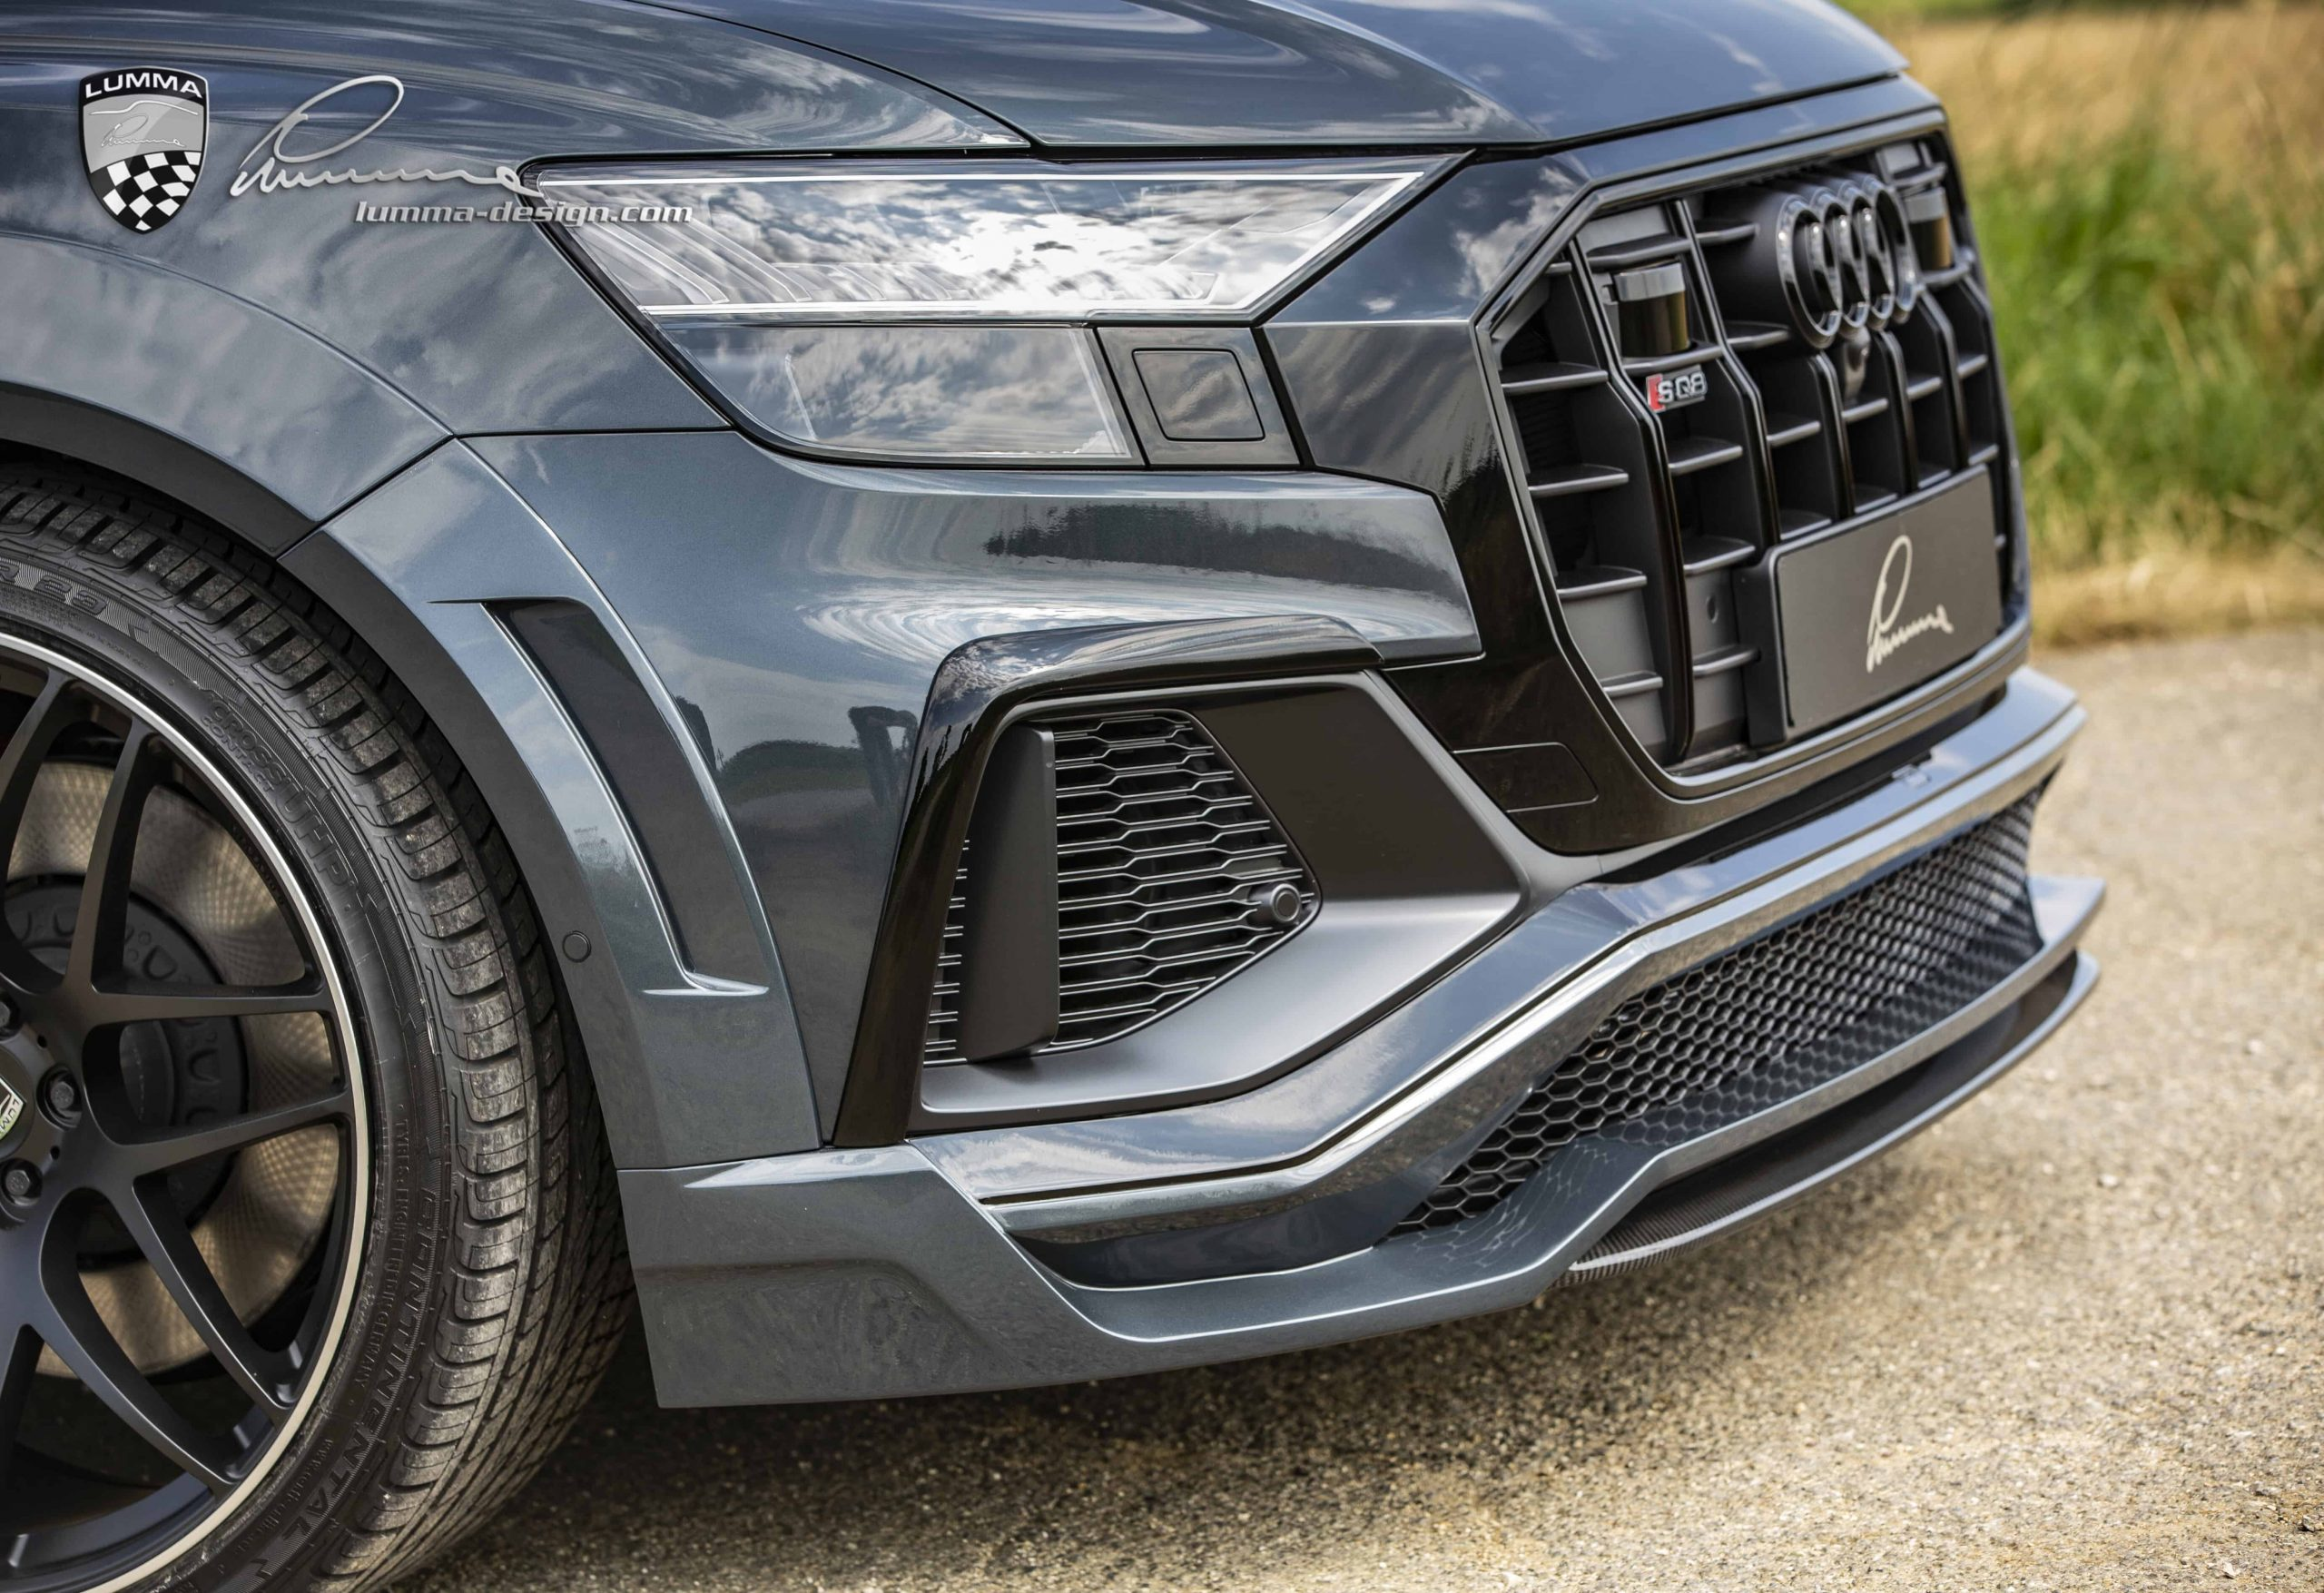 Audi SQ8 widebody kit by Lumma Design